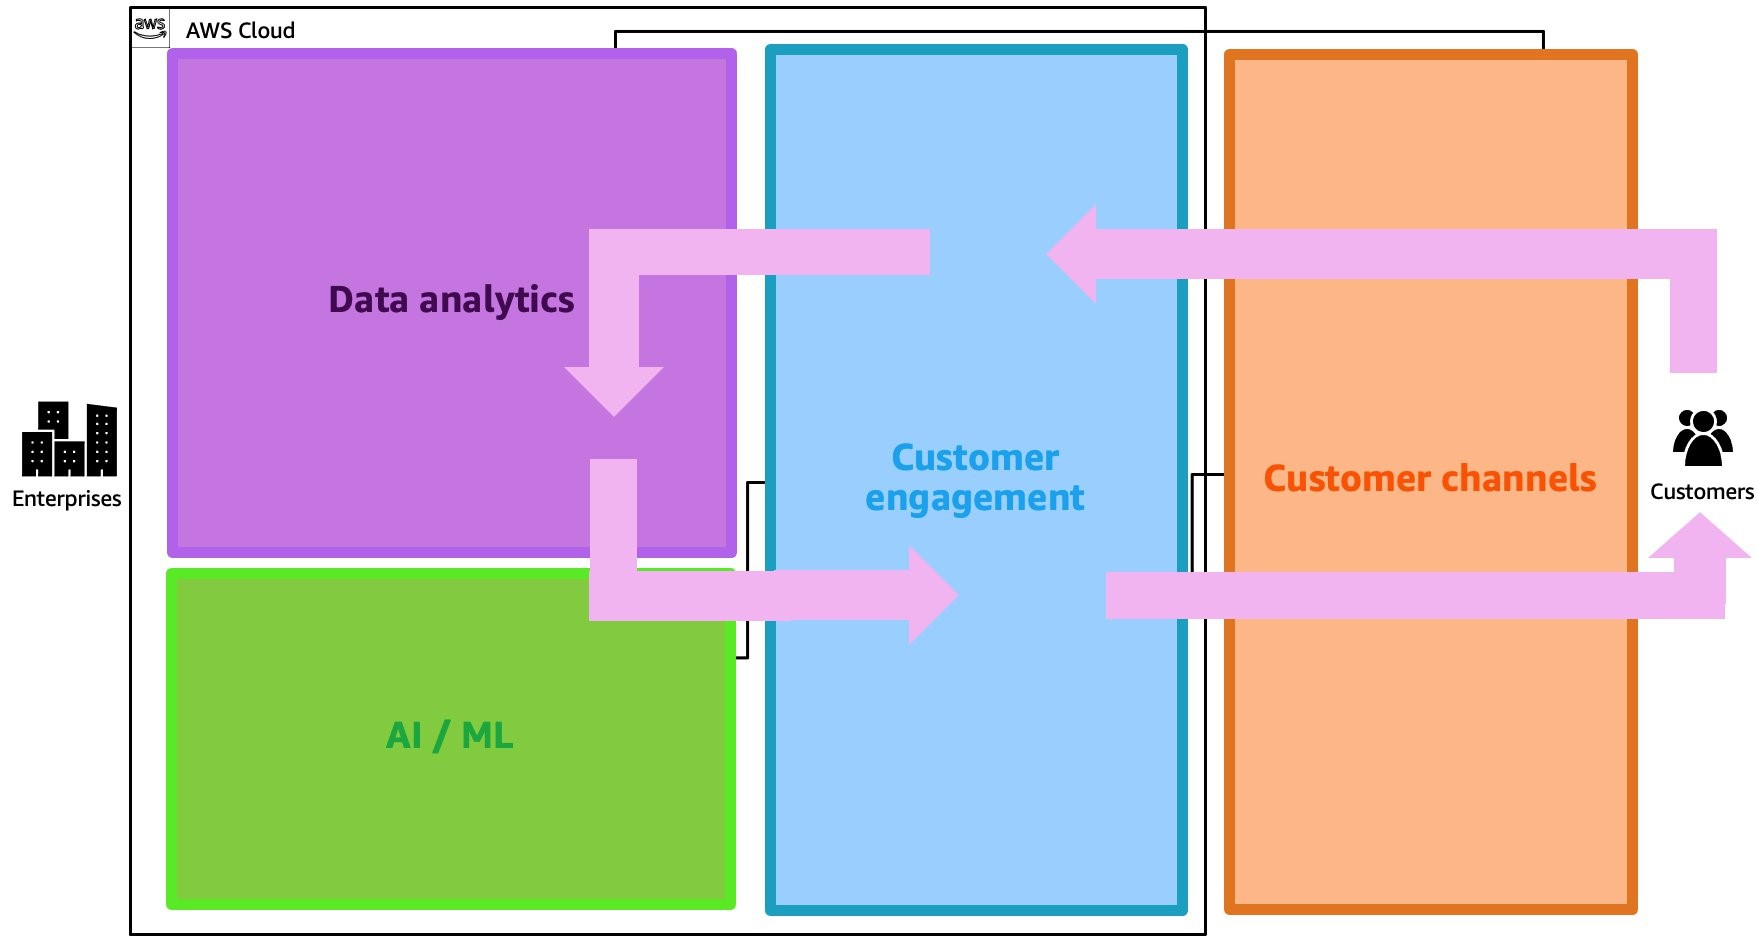 Architecting Cross-channel Intelligent Customer Engagements | Amazon Web Services